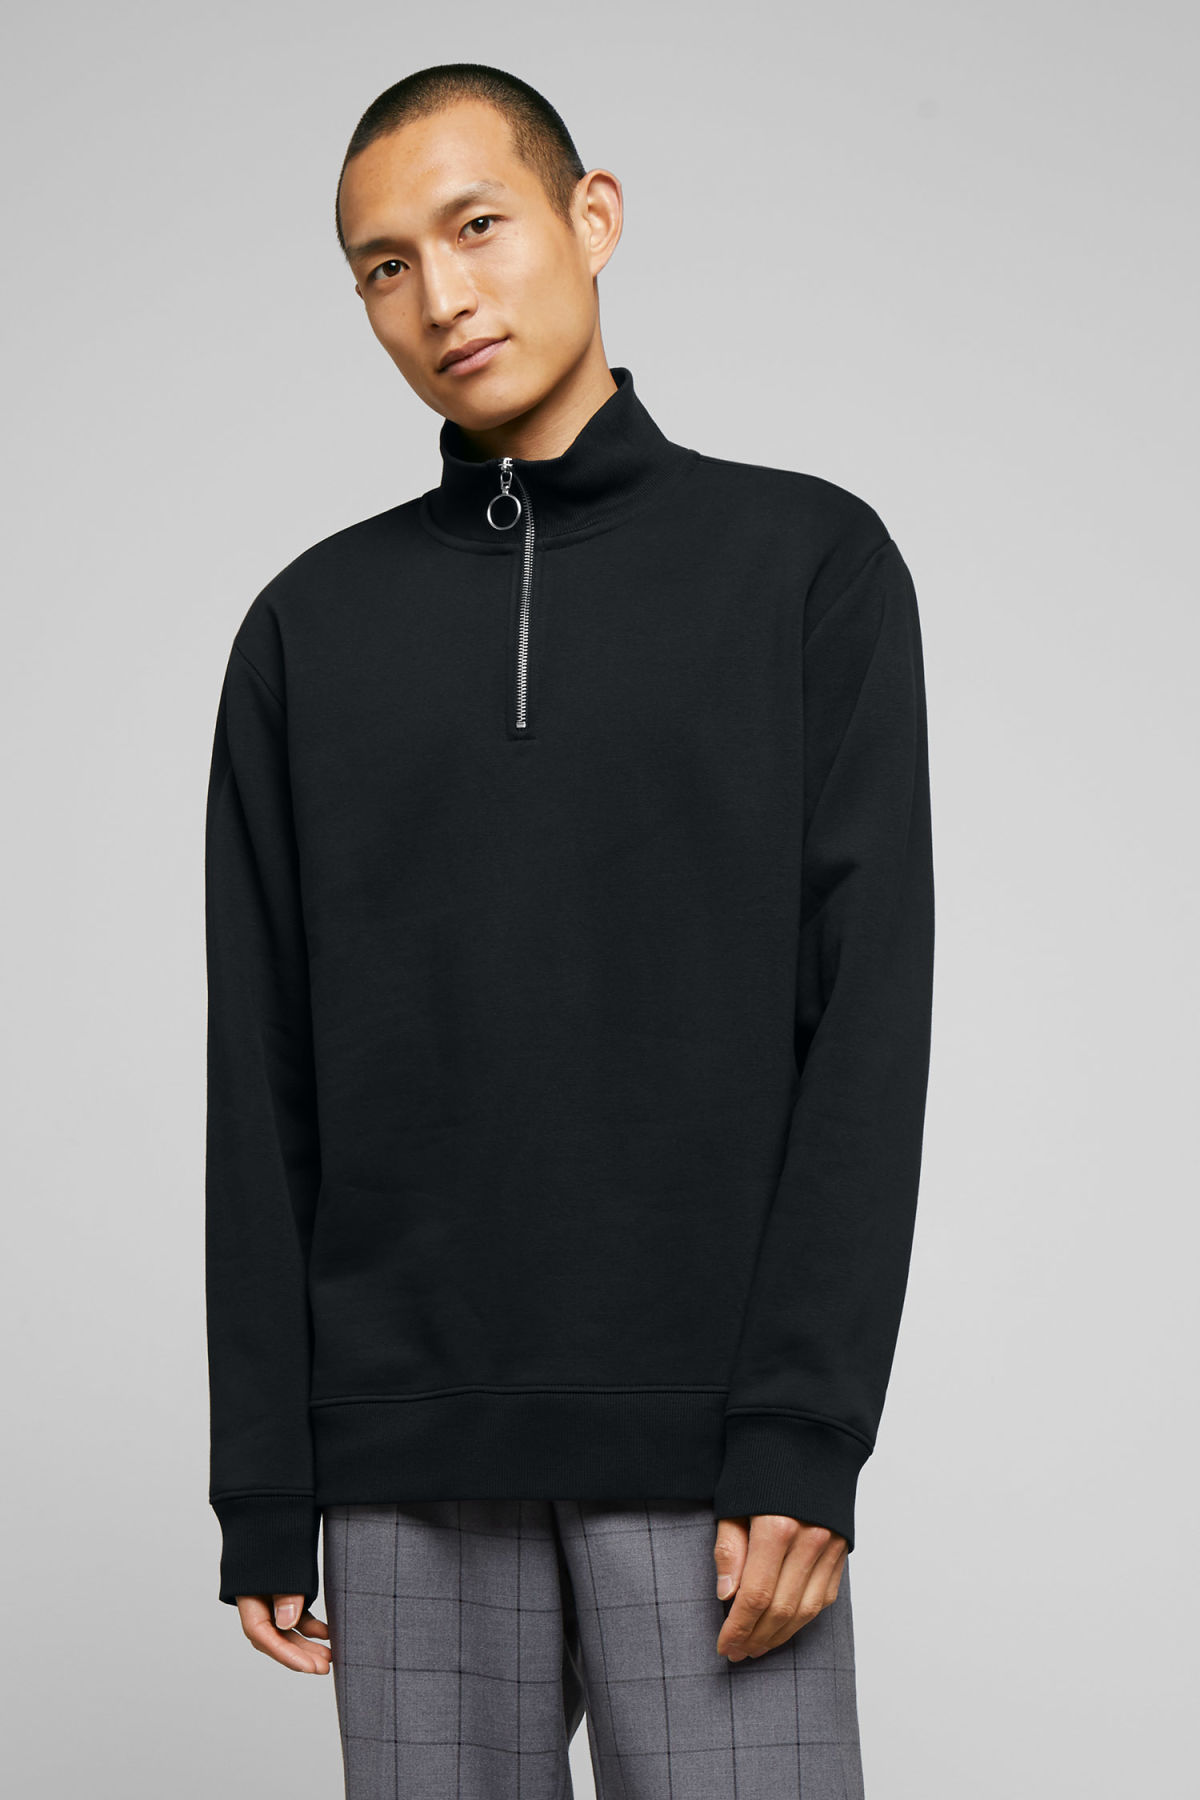 Martin Zip Sweatshirt - Black - Hoodies   sweatshirts - Weekday 87a26977b969